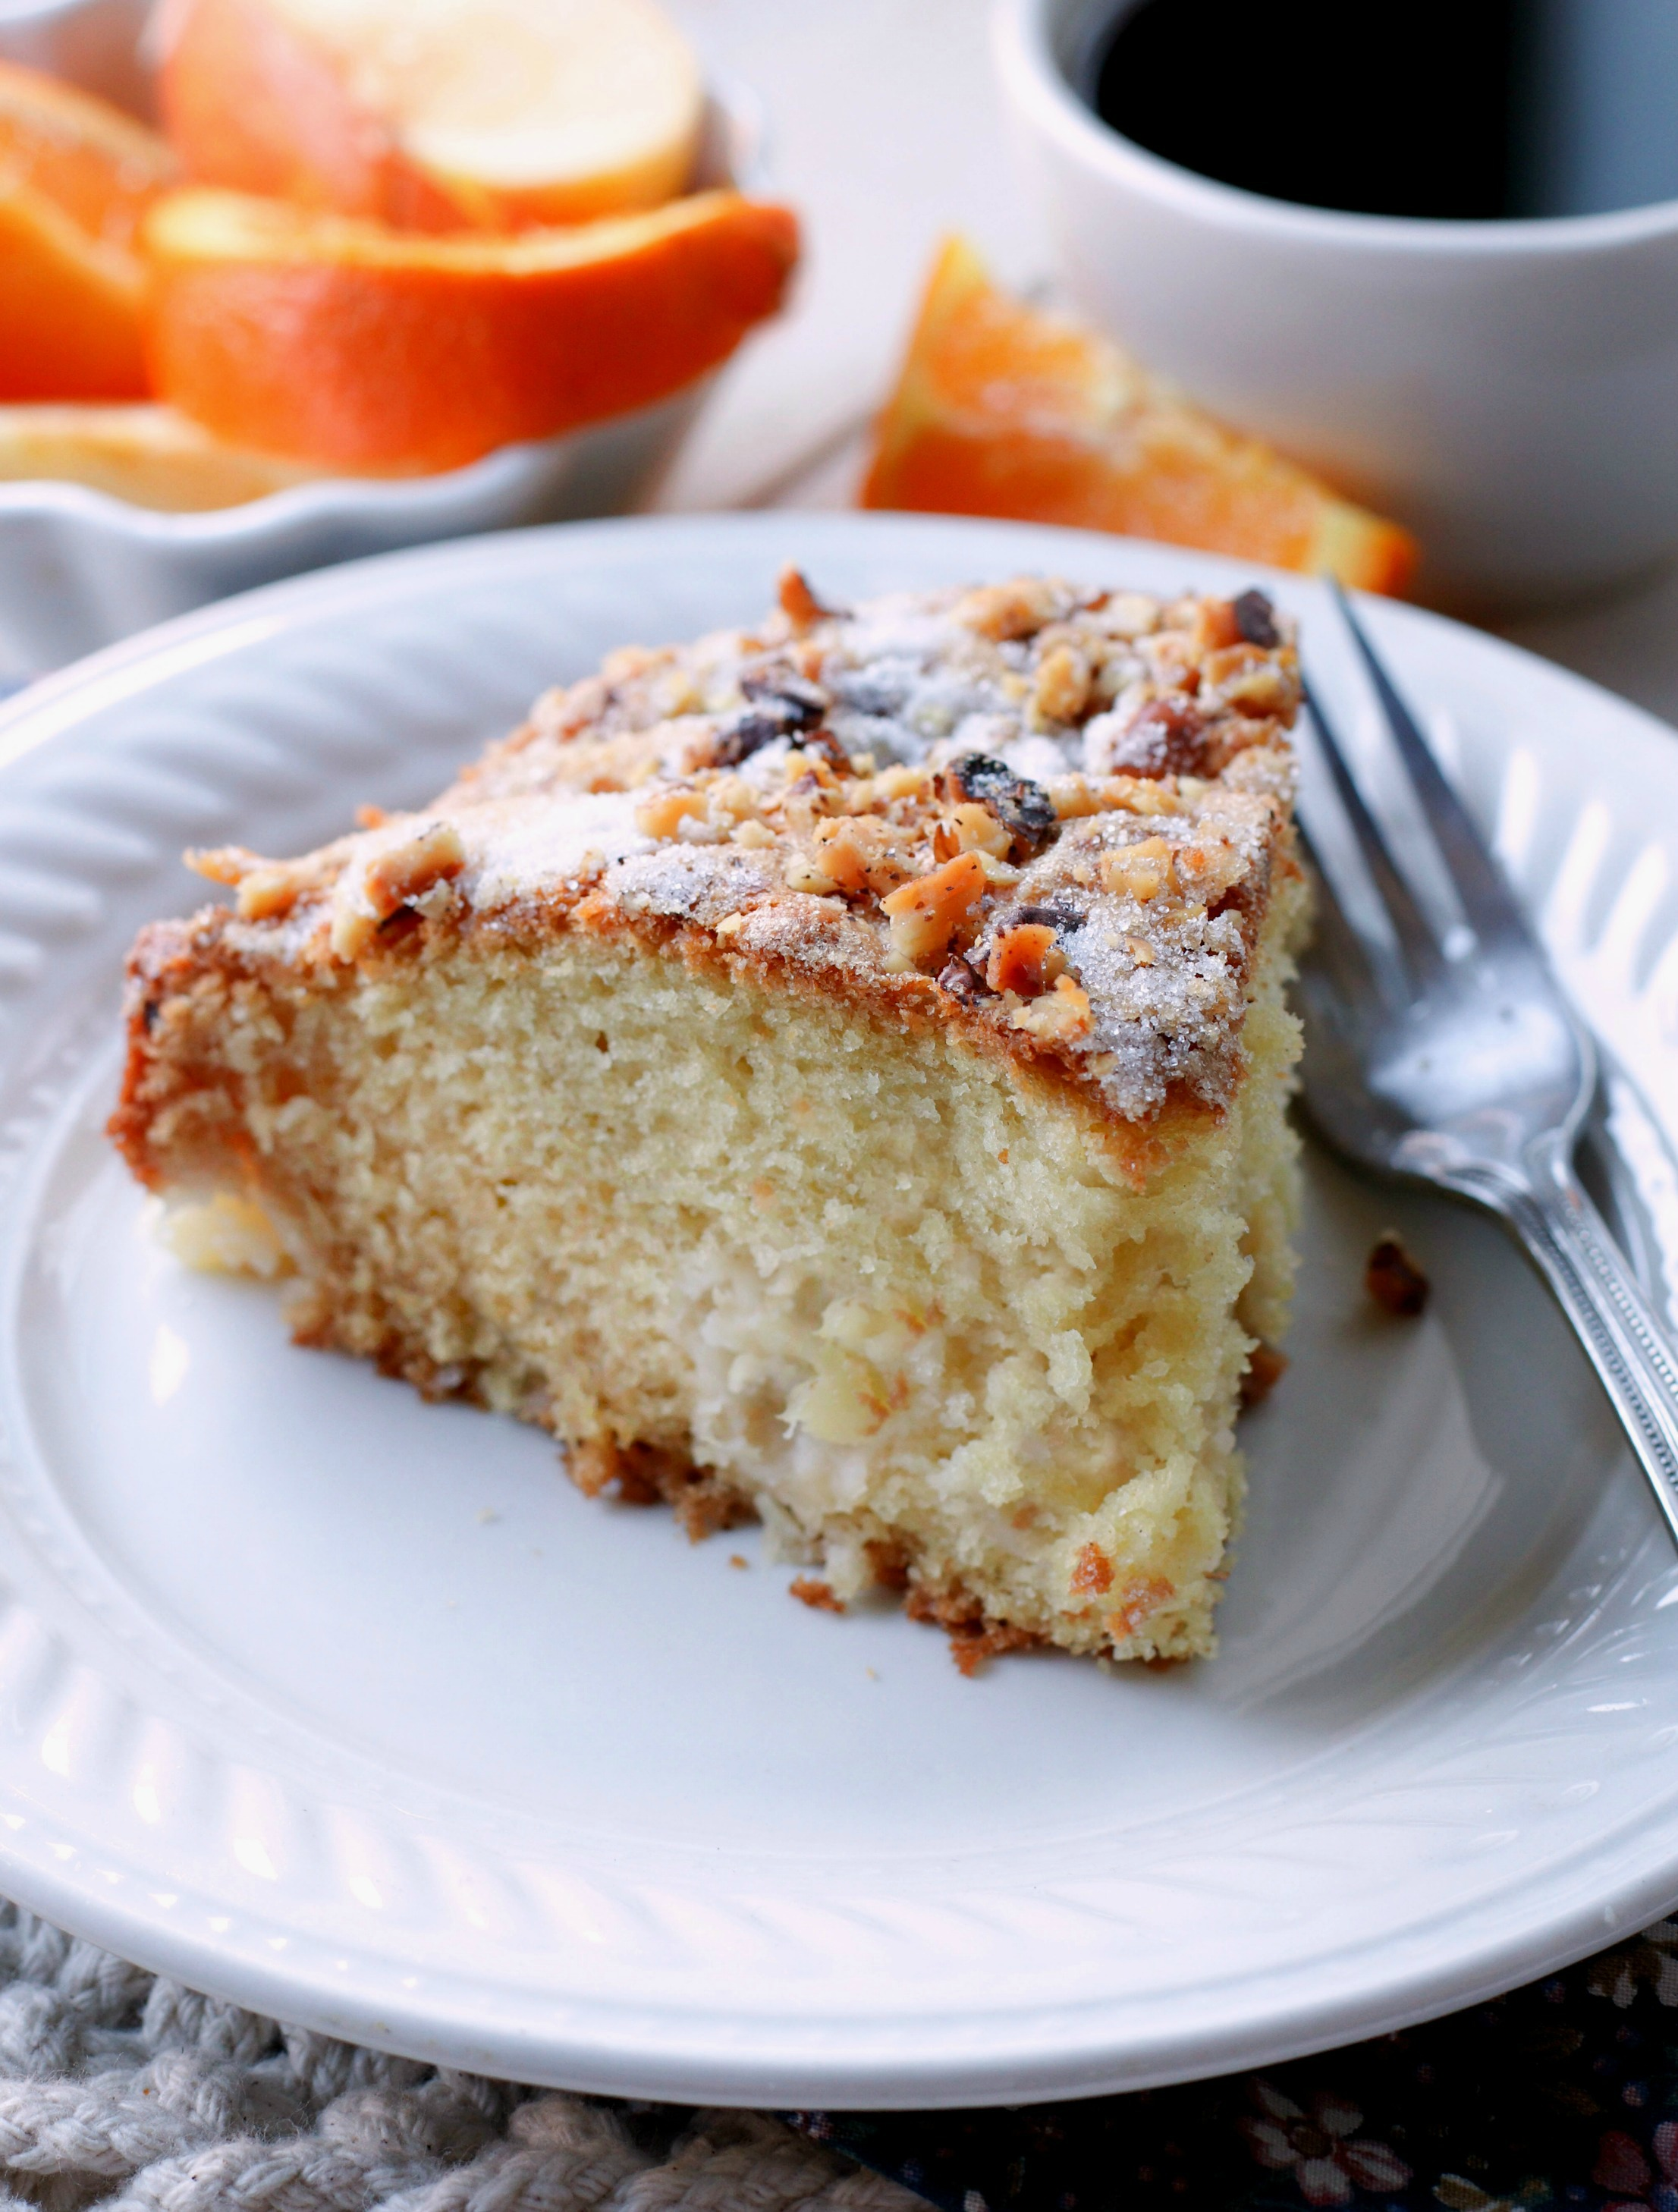 Pineapple Walnut Cake With Cream Cheese Frosting